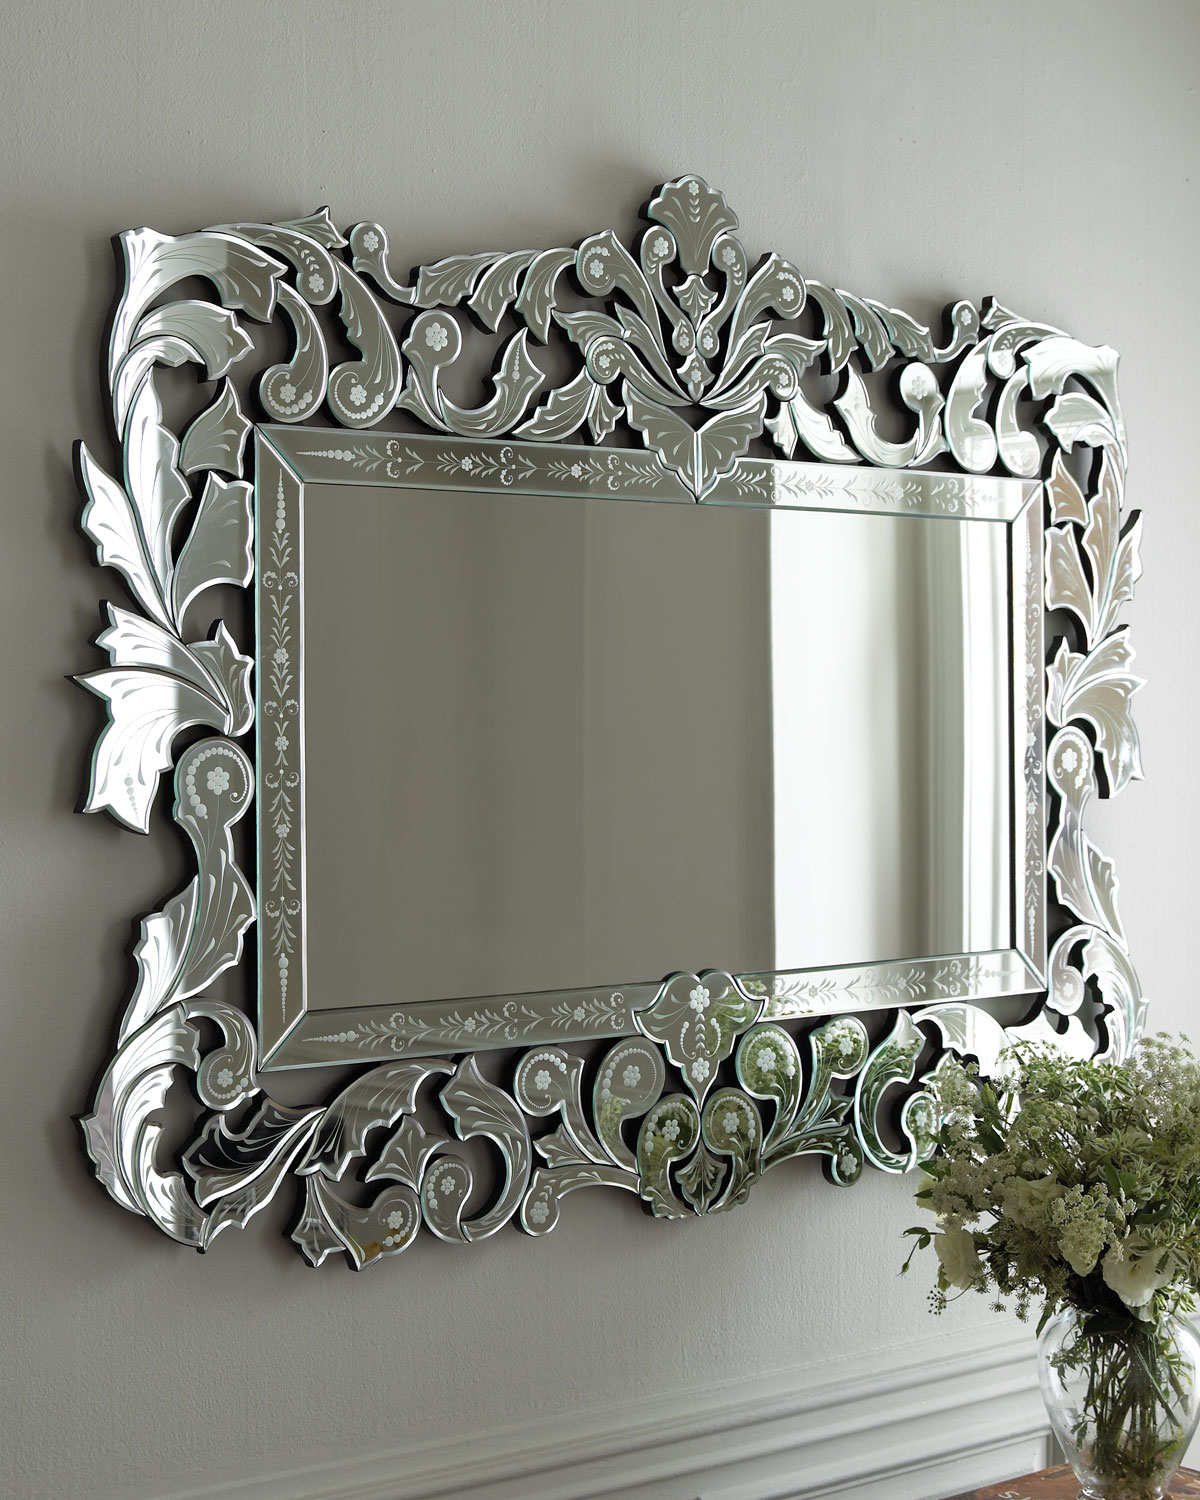 Giorgia venetian style mirror from horchow epic wishlist for Mirror design